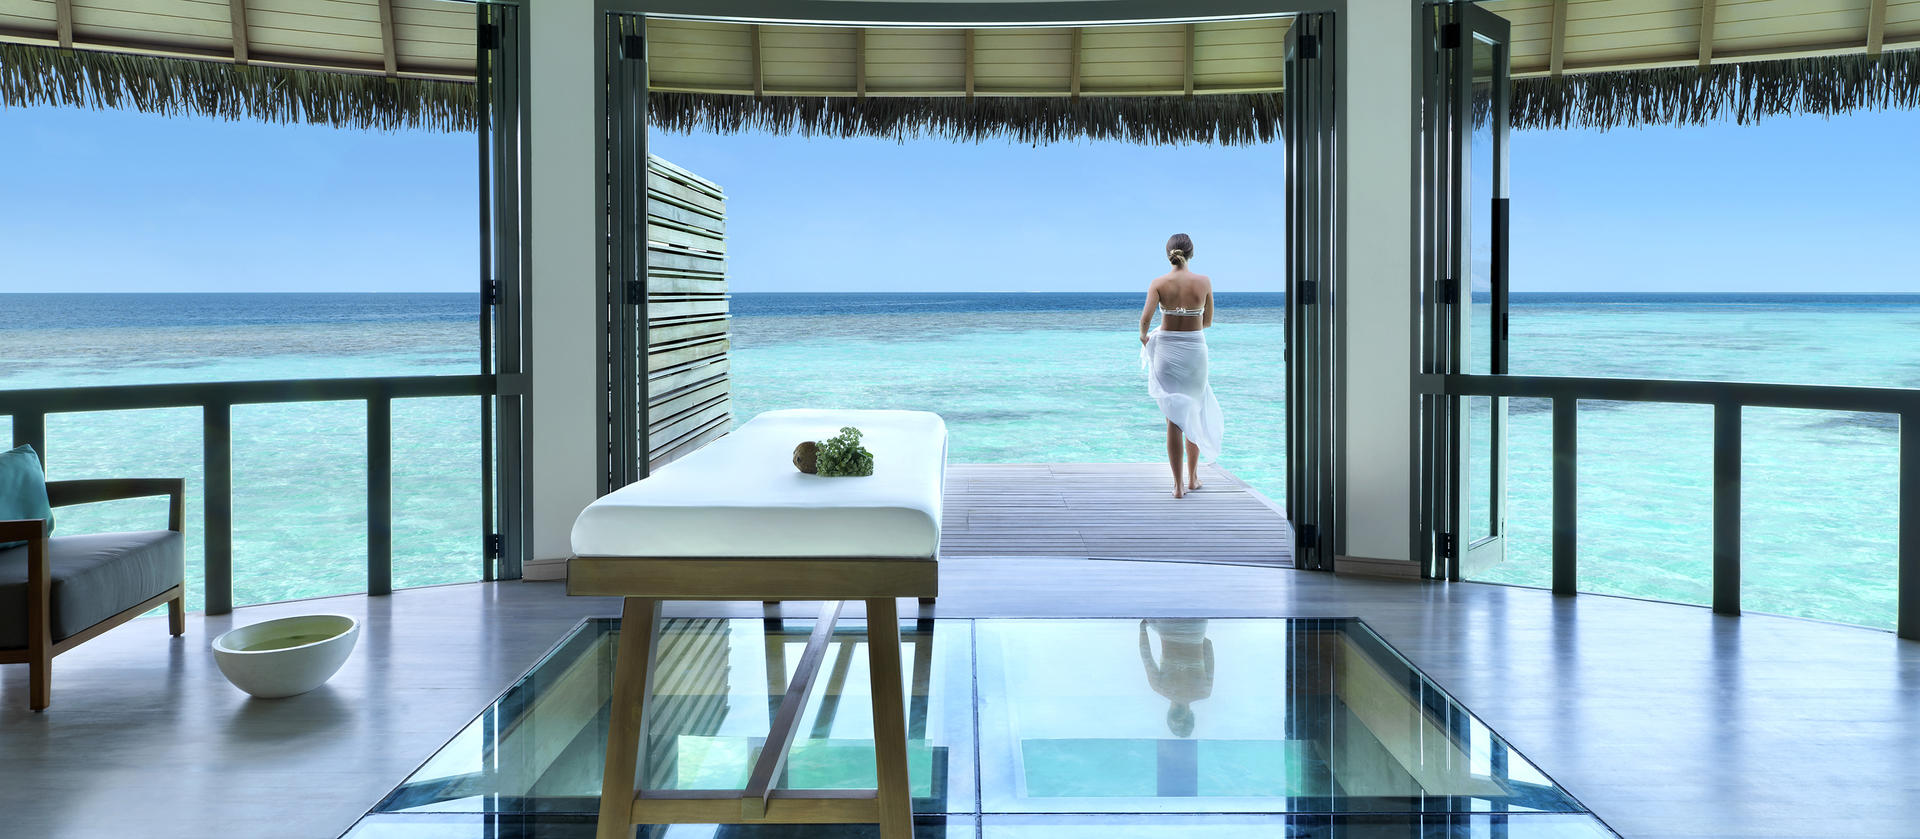 Vakkaru Maldives Spa-Behandlungsraum Lifestyle